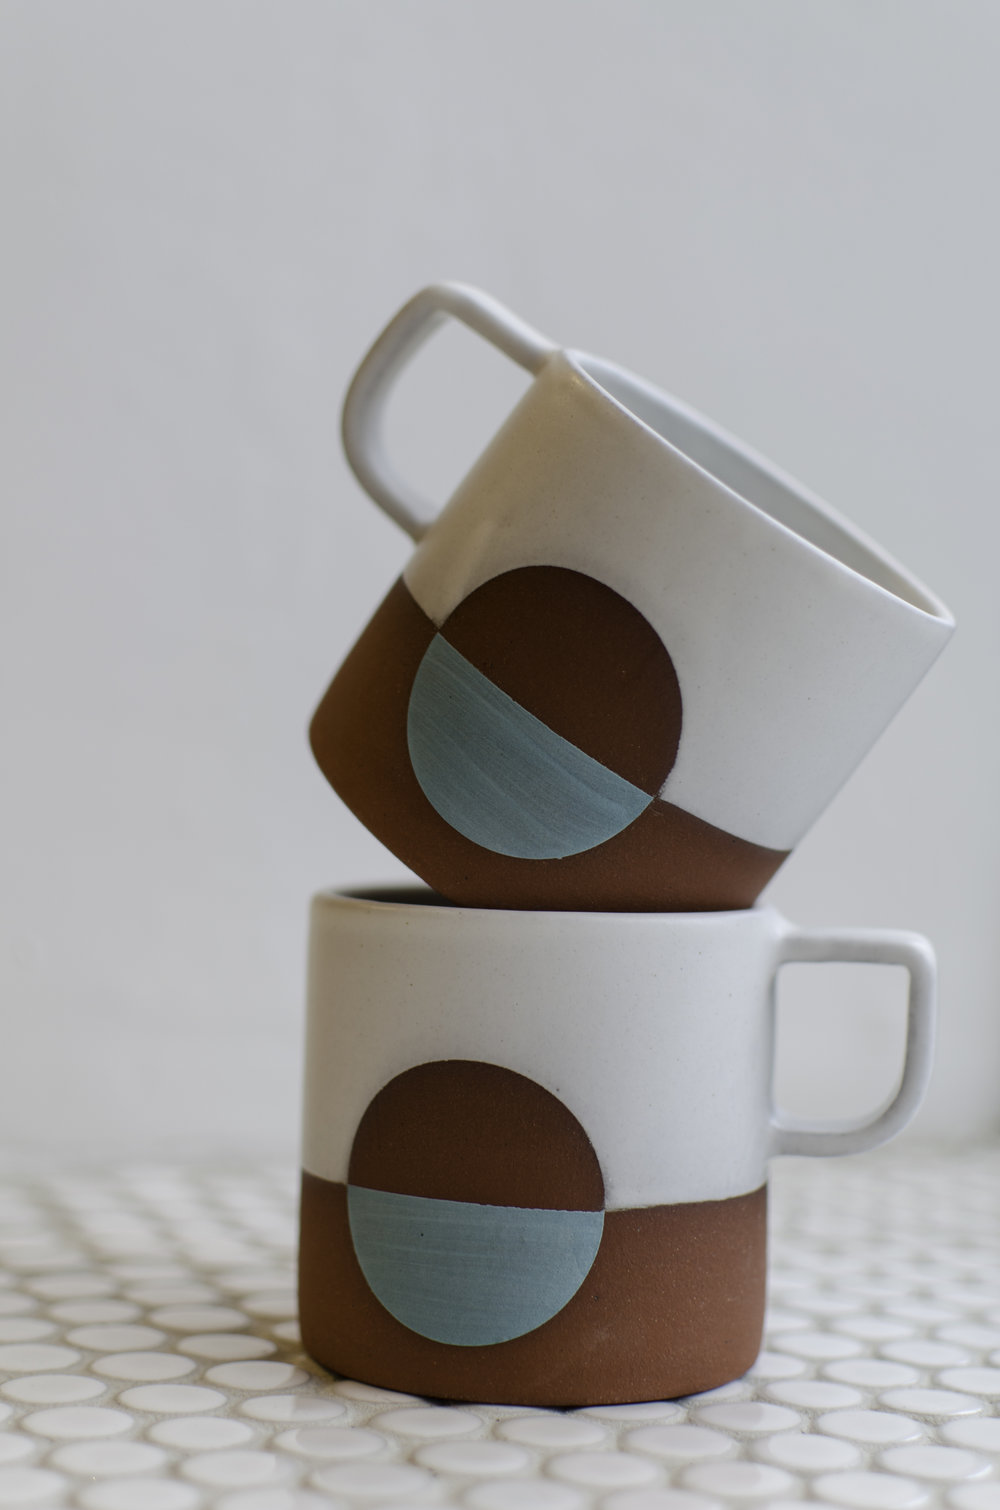 Wolf CeramicsMoon Mug - Sarah Wolf and I grew up together and it's amazing to see all that she has accomplished with her beautiful line of handmade ceramics!